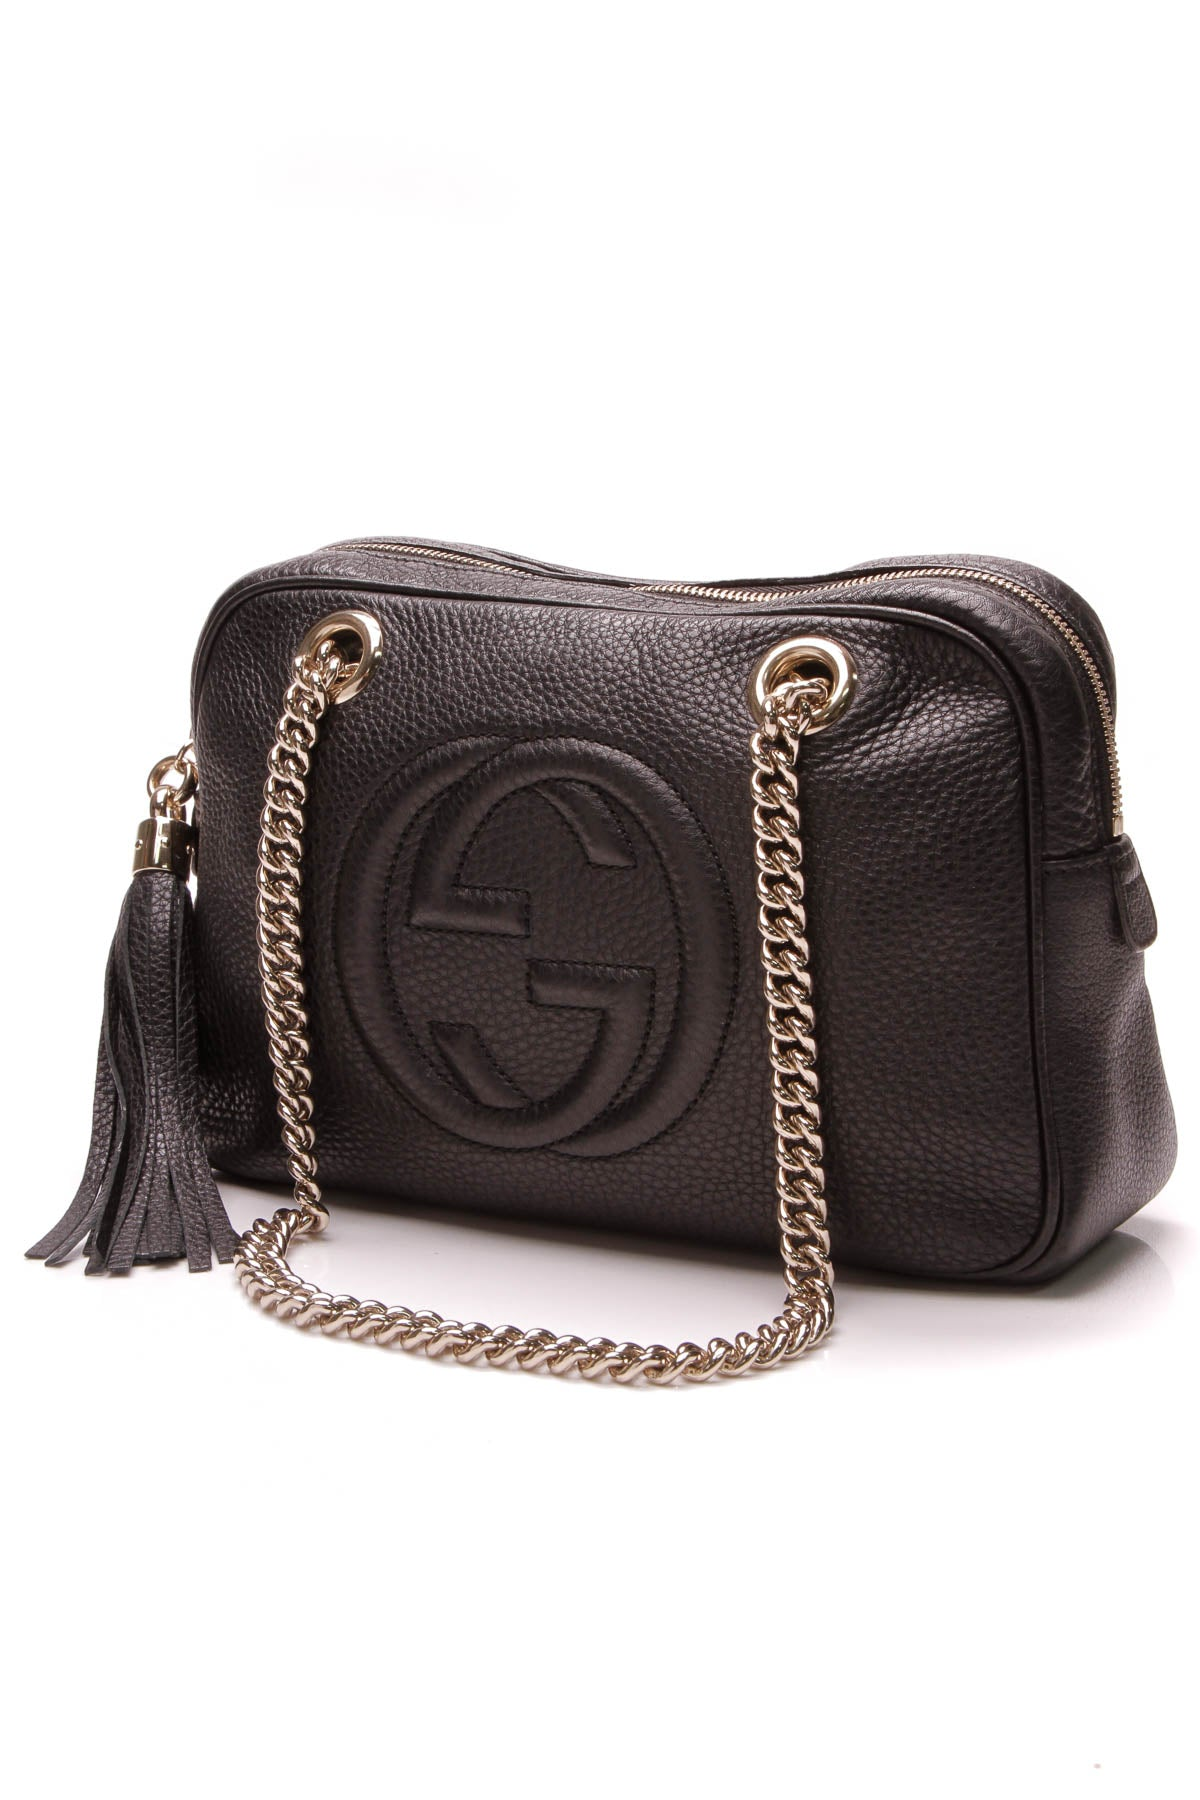 fce96c7f0b5a4a Shop authentic luxury Bags - Couture USA